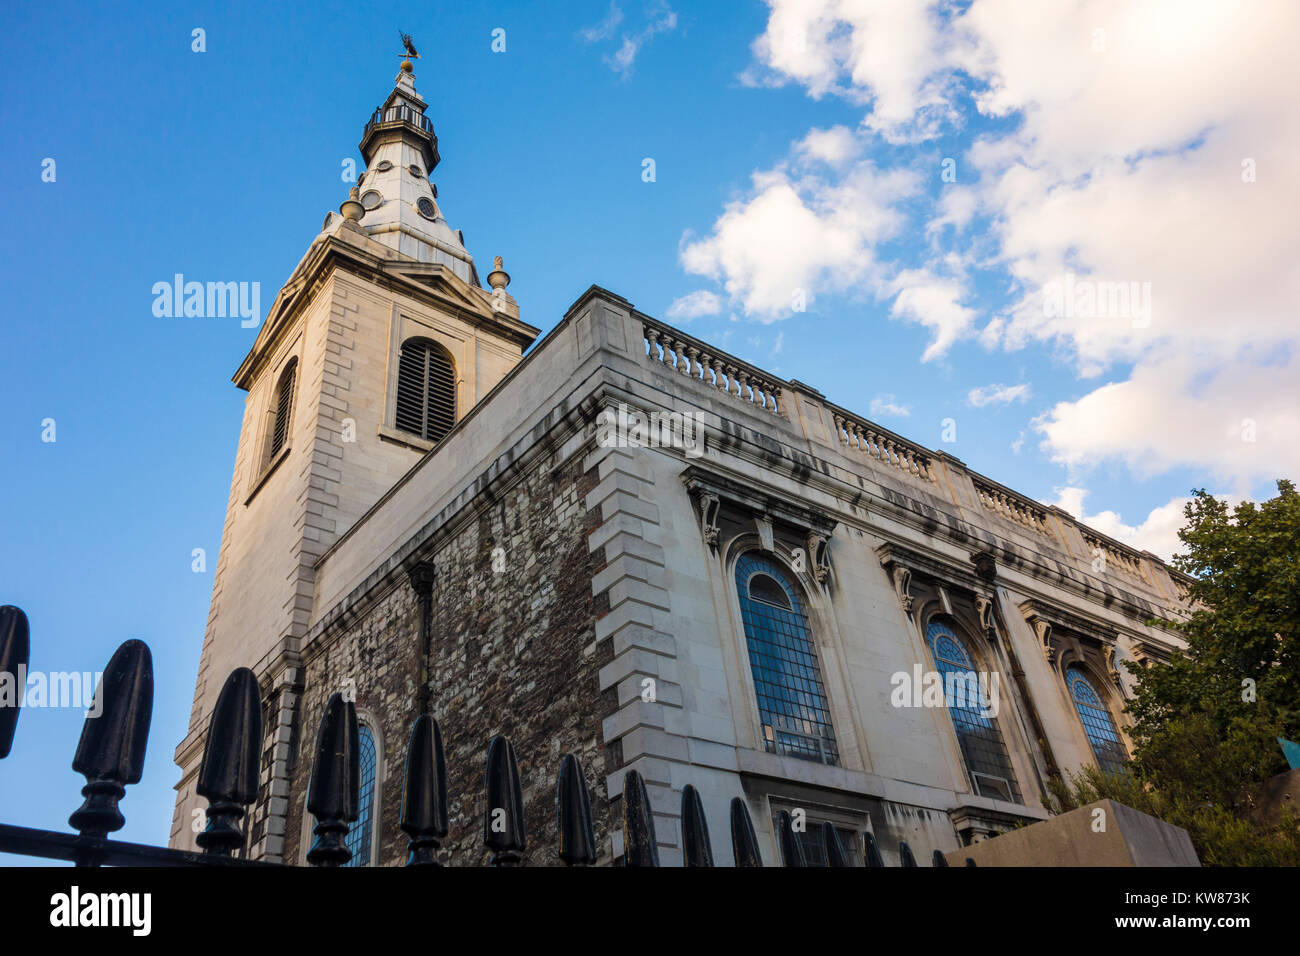 St Nicholas Cole Abbey, Queen Victoria Street, City of London, UK. Baroque church by Sir Christopher Wren and reconstructed - Stock Image